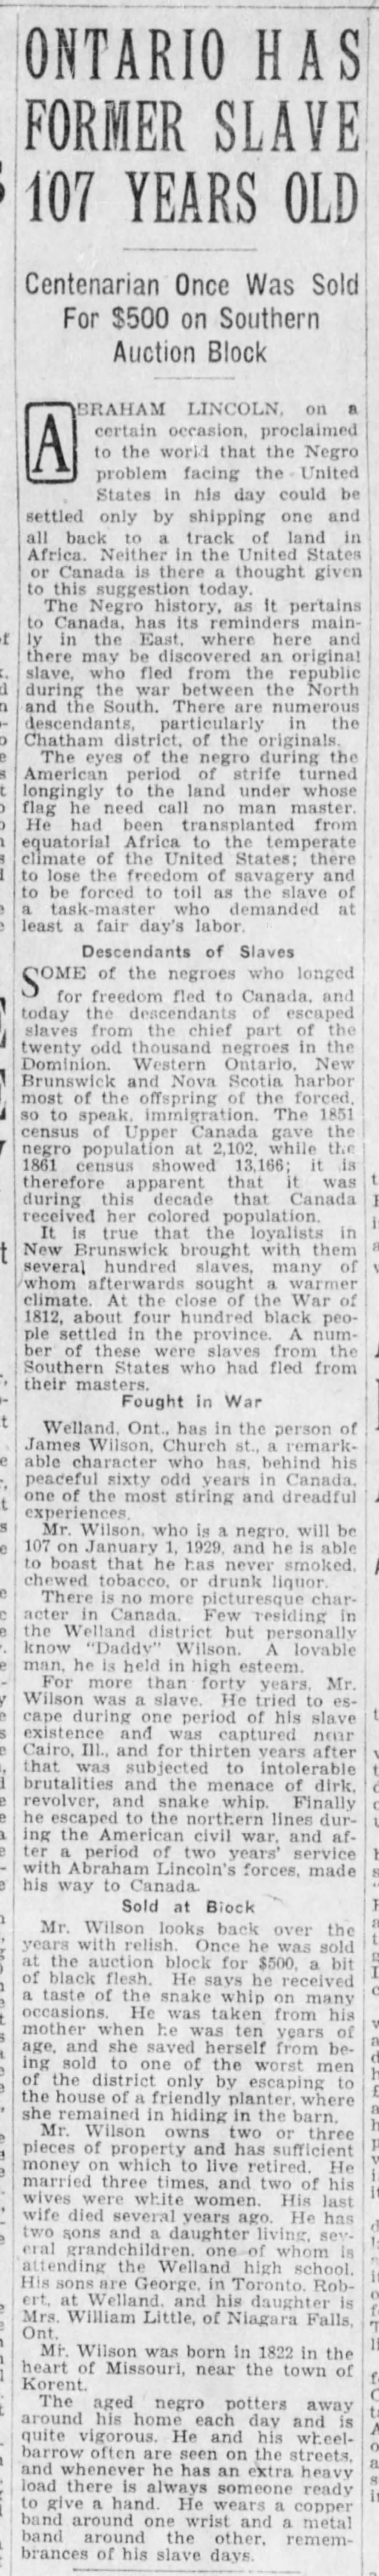 19281229 James (Daddy) Wilson, Welland remembers slavery, The Winnipeg Tribune, Dec. 29, 1928